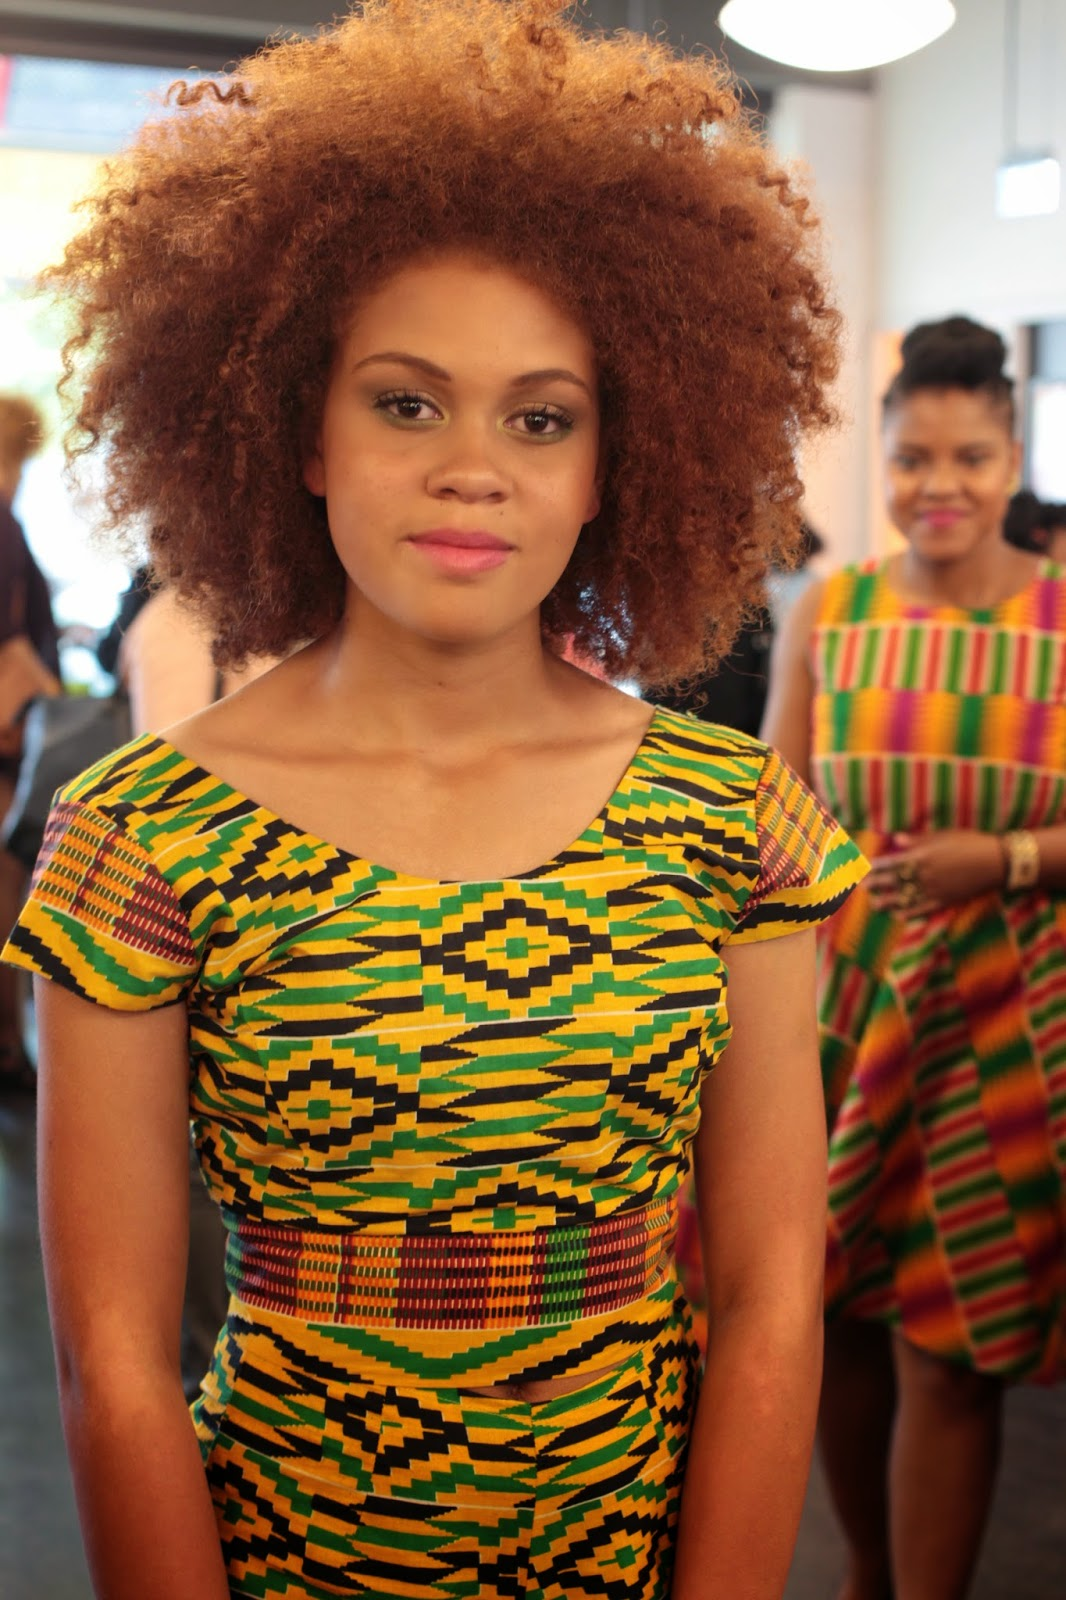 Afro Chic event